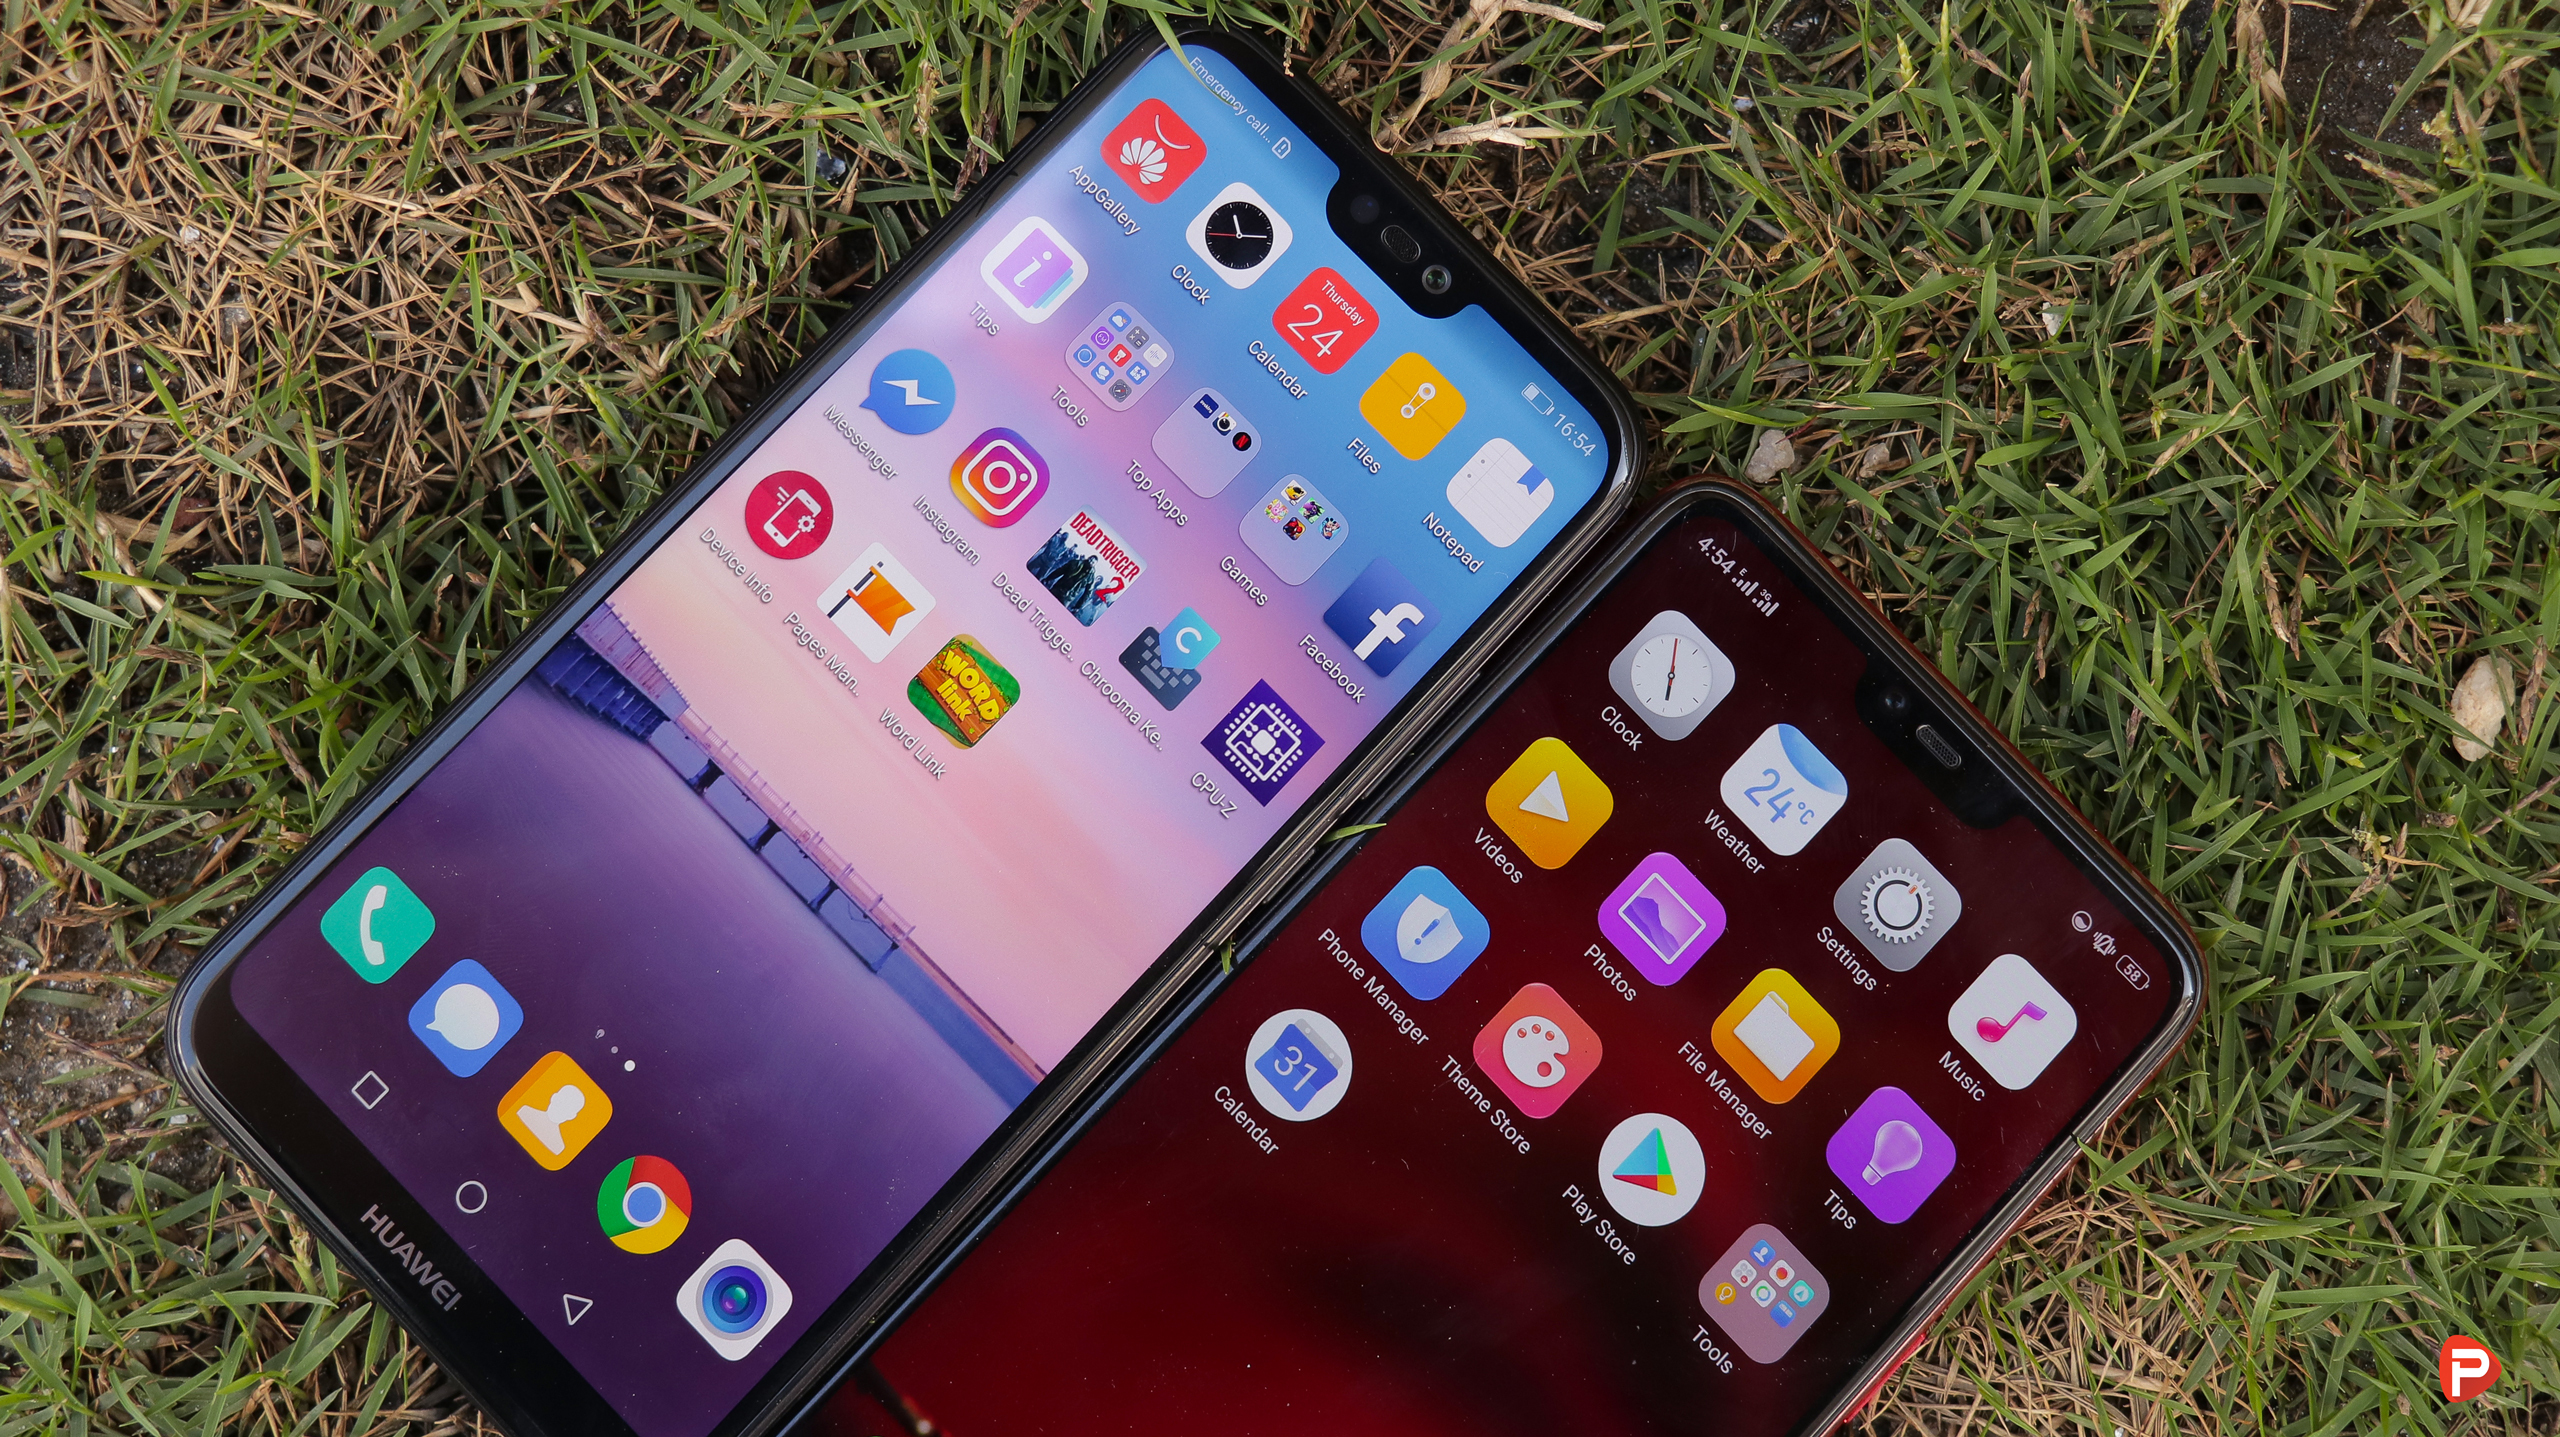 Huawei Nova 3e is better than the Oppo F7: 5 reasons